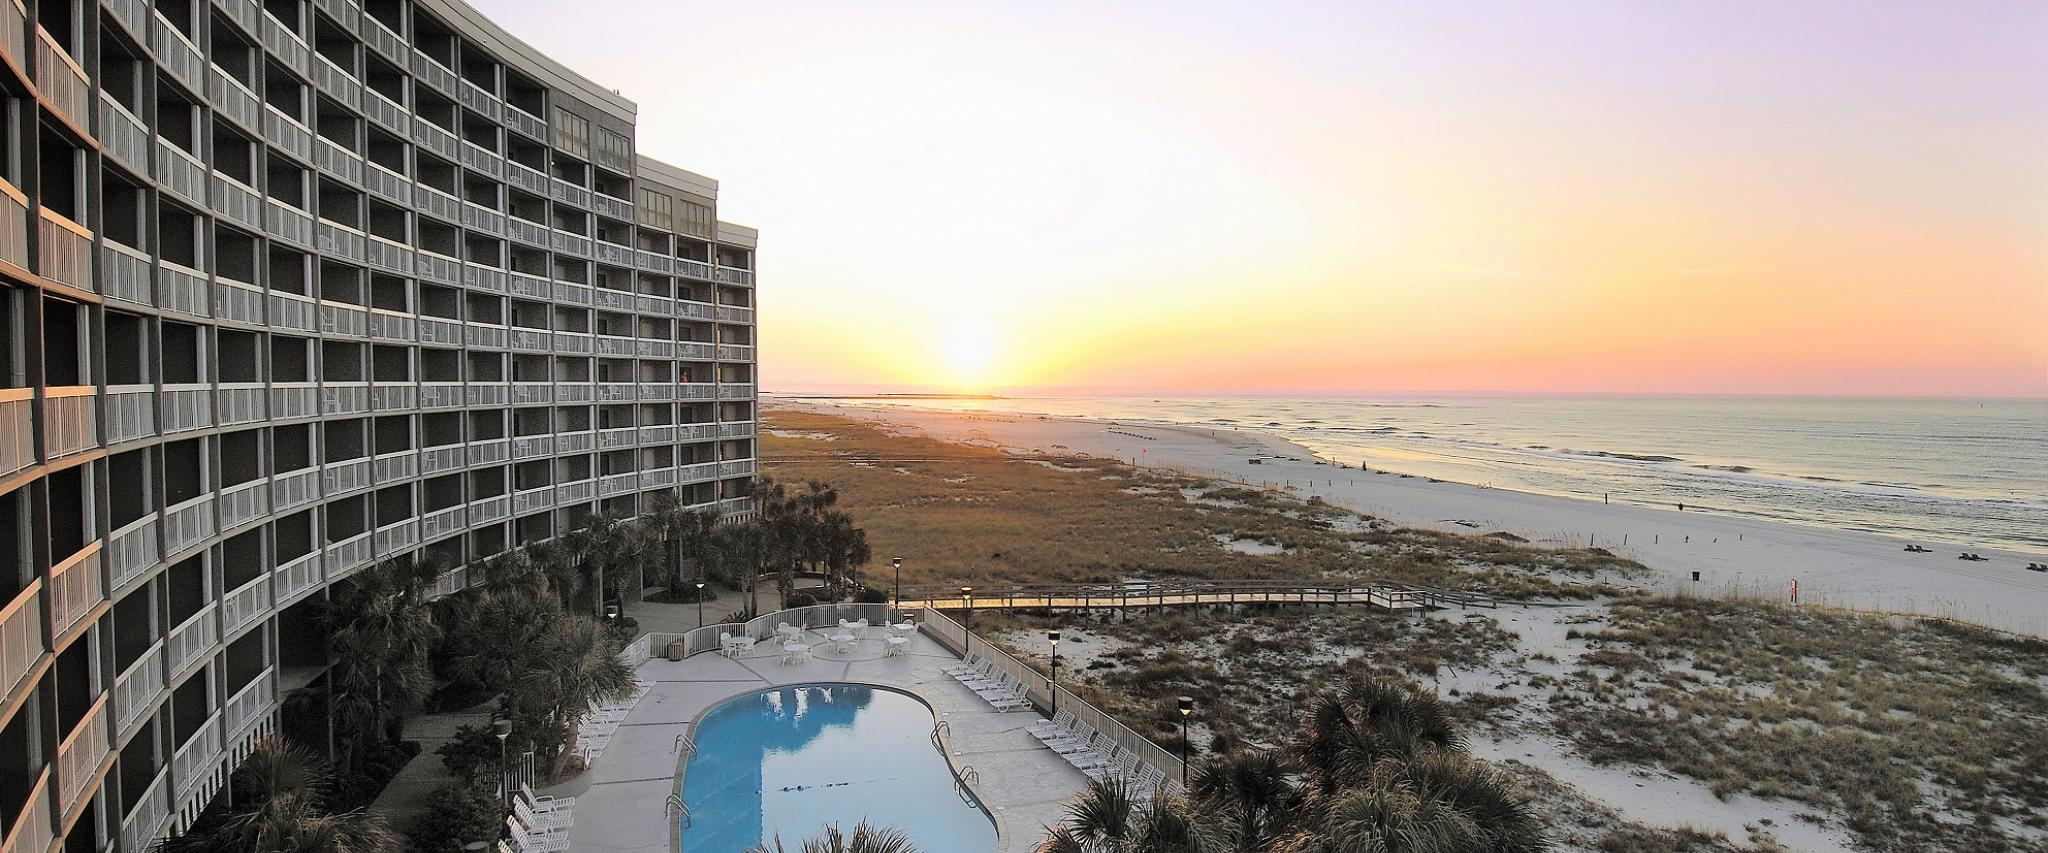 Hotels In Gulf Shores & Orange Beach 2019